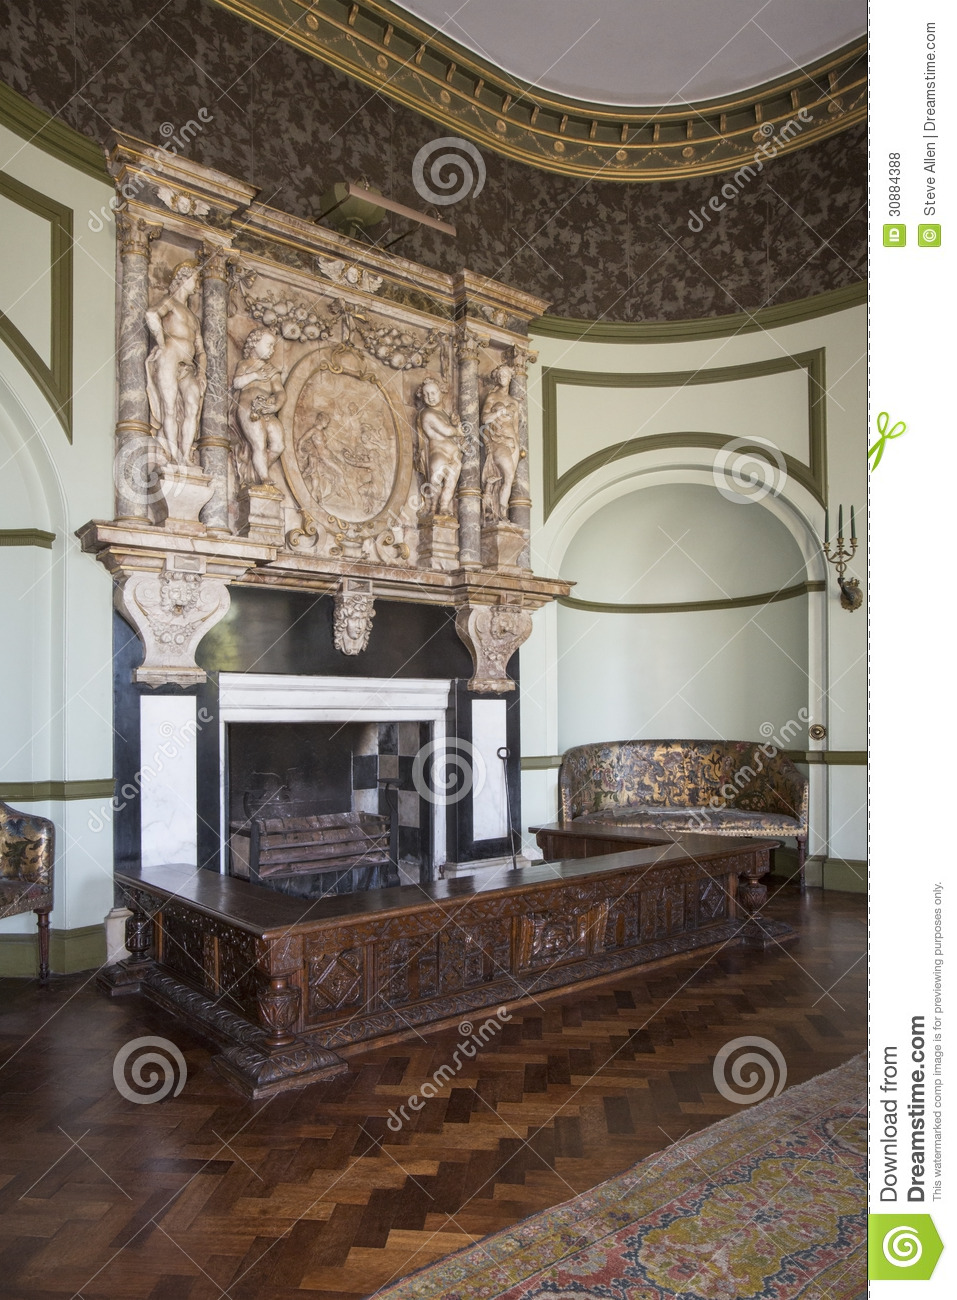 English Country Manor House Interior Editorial Stock